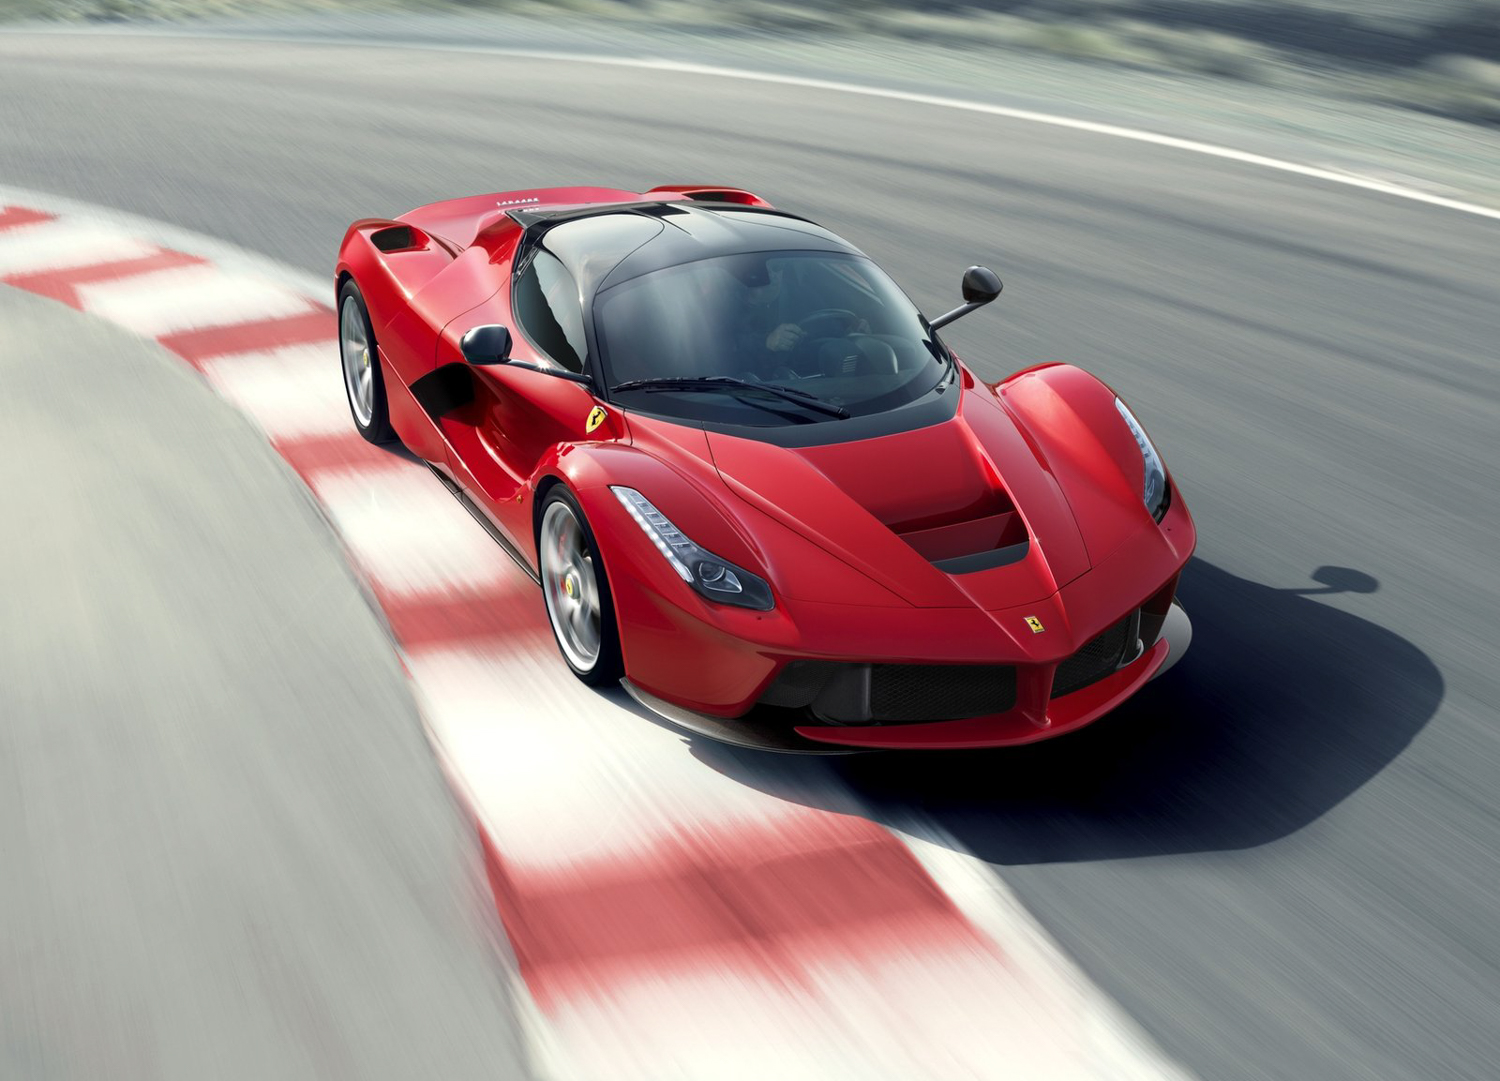 2014 Ferrari LaFerrari 3/4 high on track